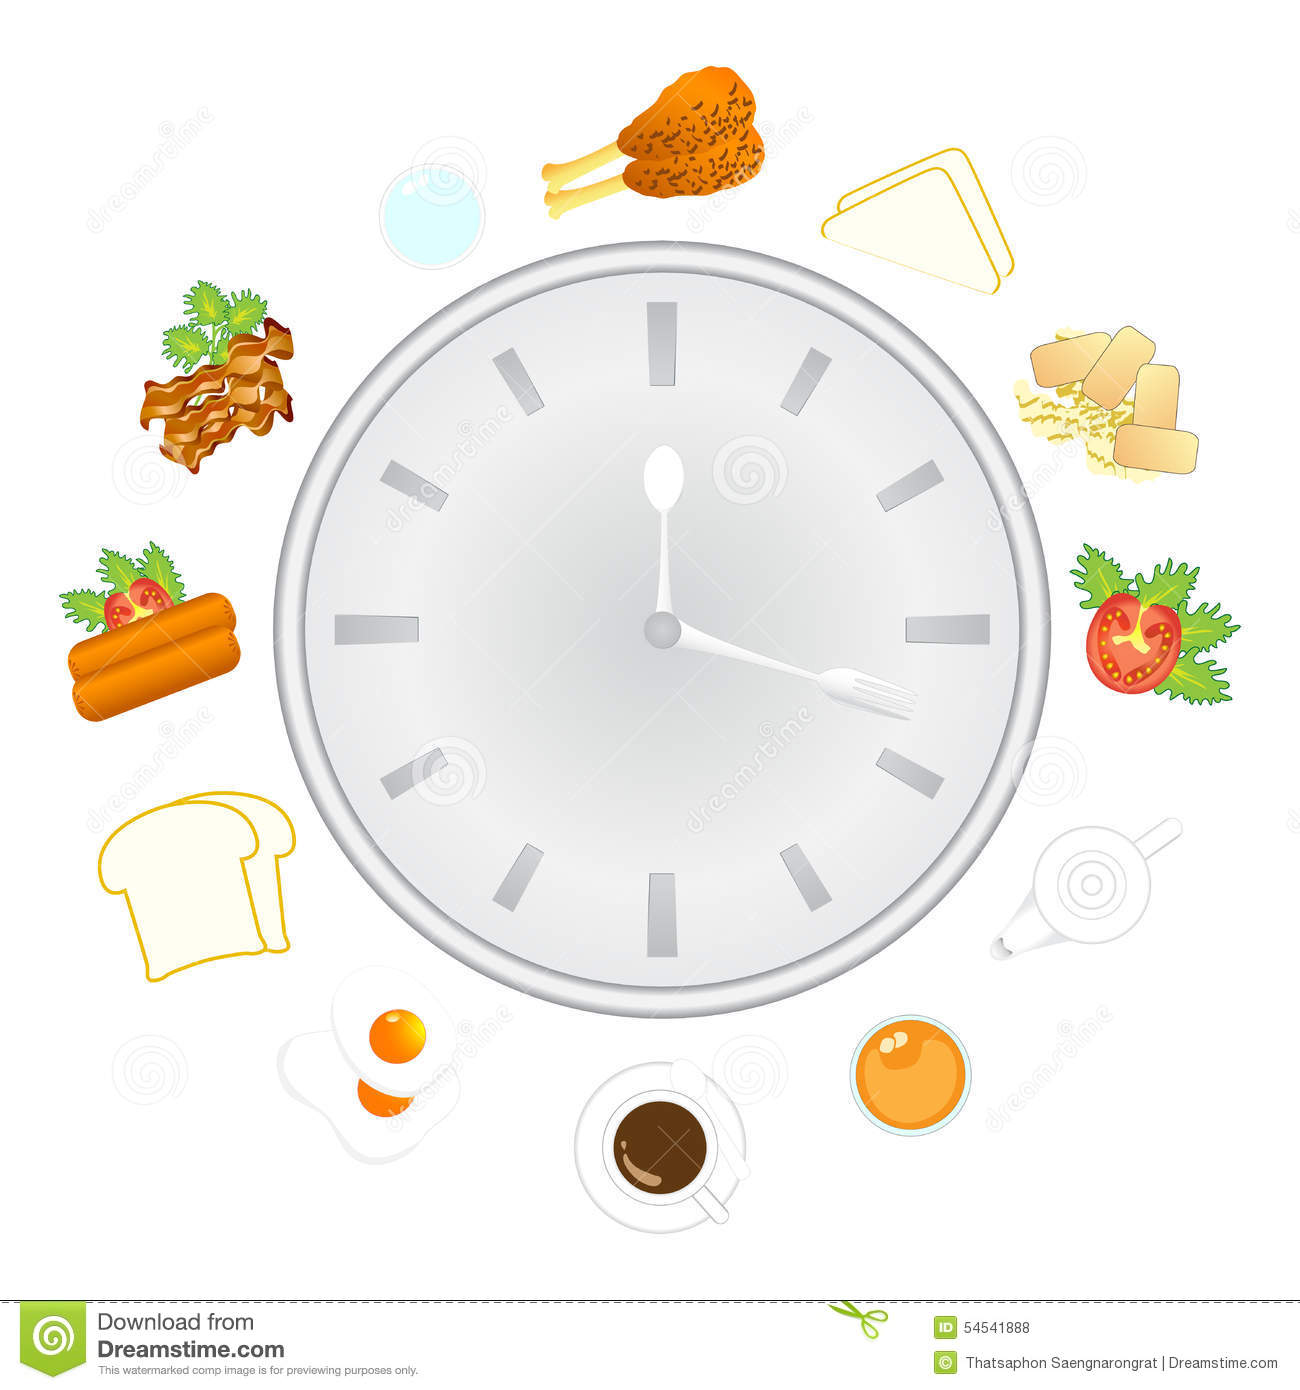 Clock With Food And Kitchen Utensils, Meal Time Stock Vector ...